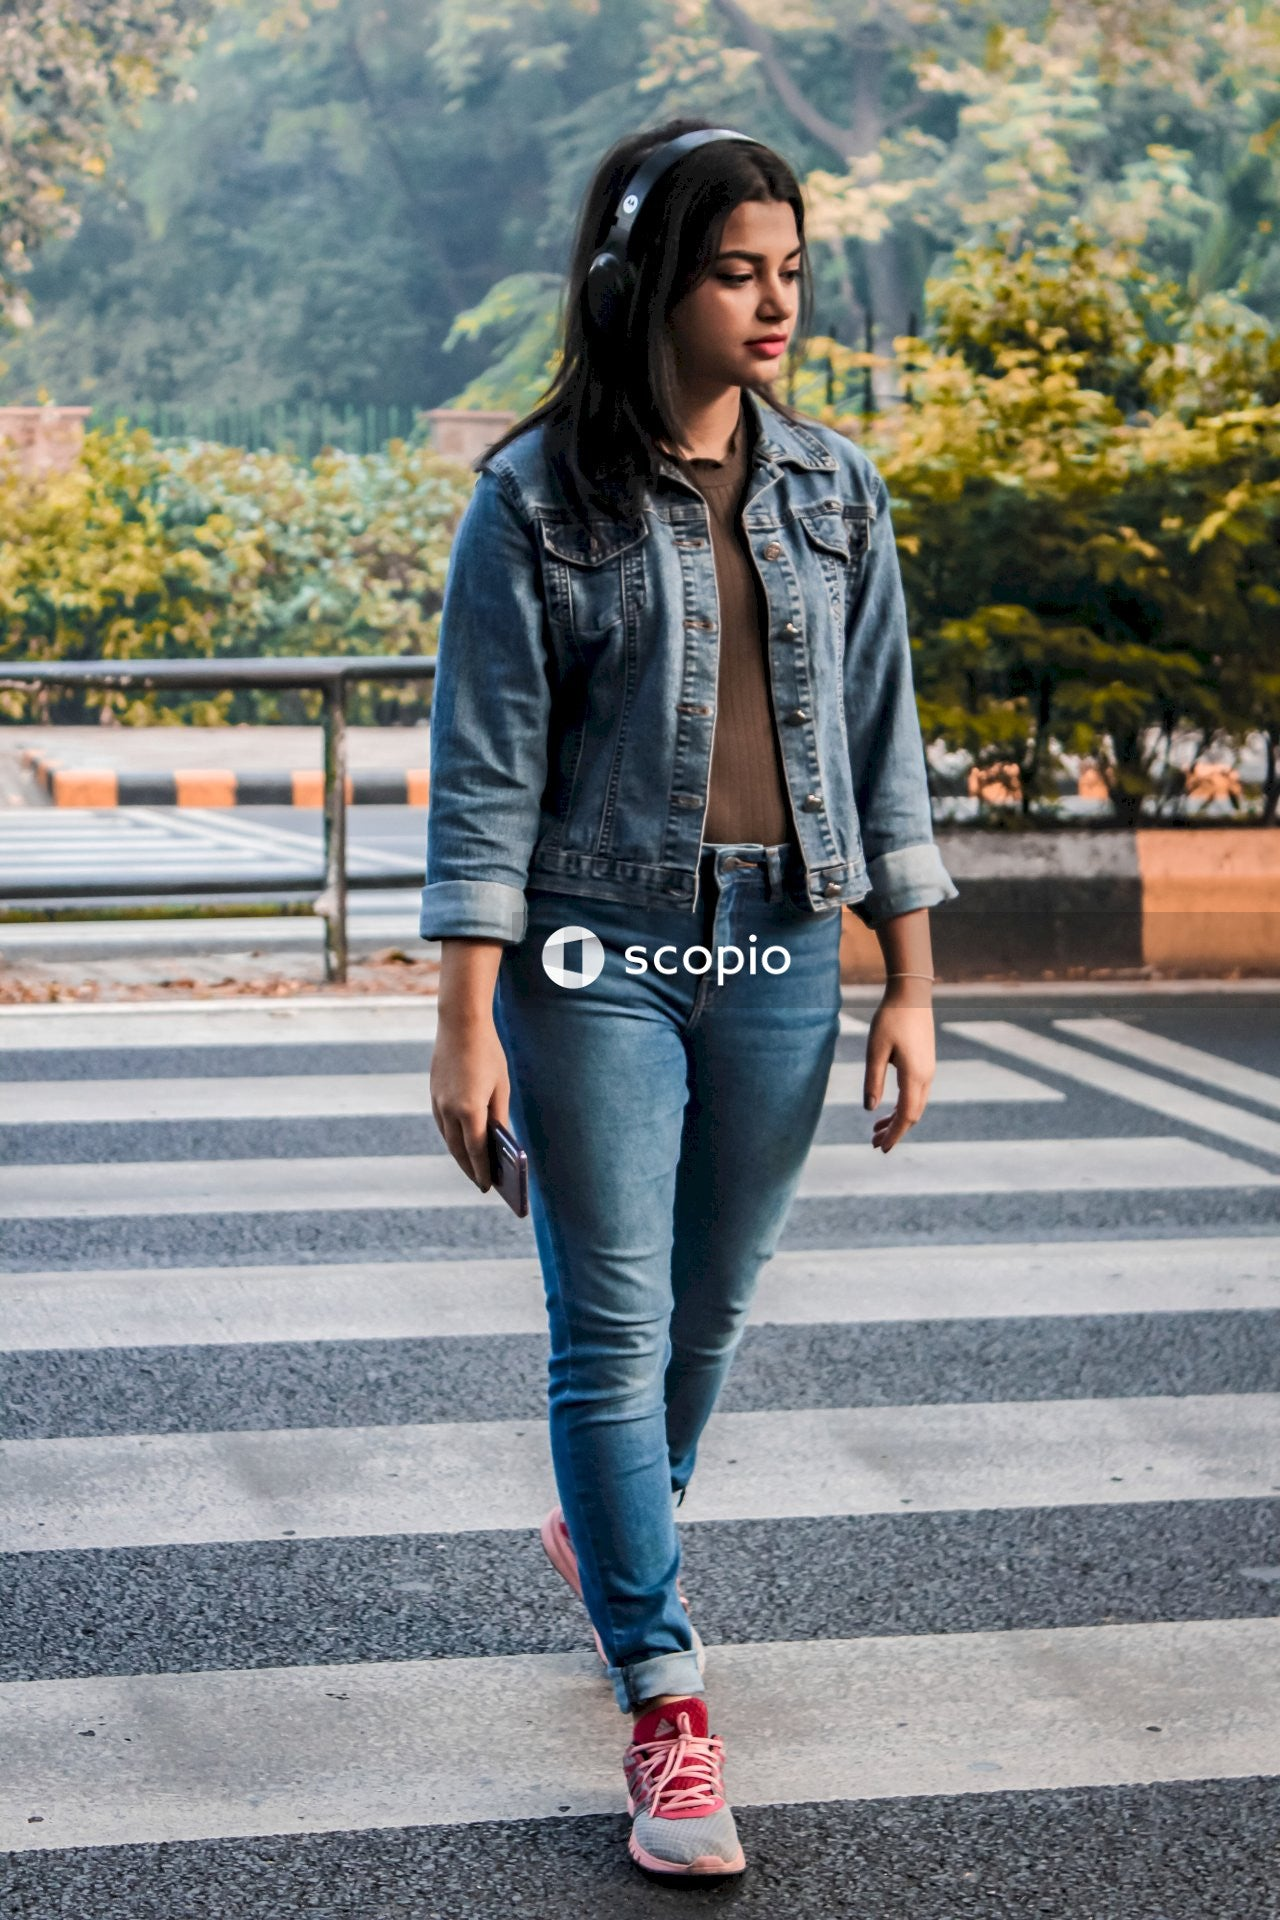 Woman in blue denim jacket and blue denim jeans standing on pedestrian lane